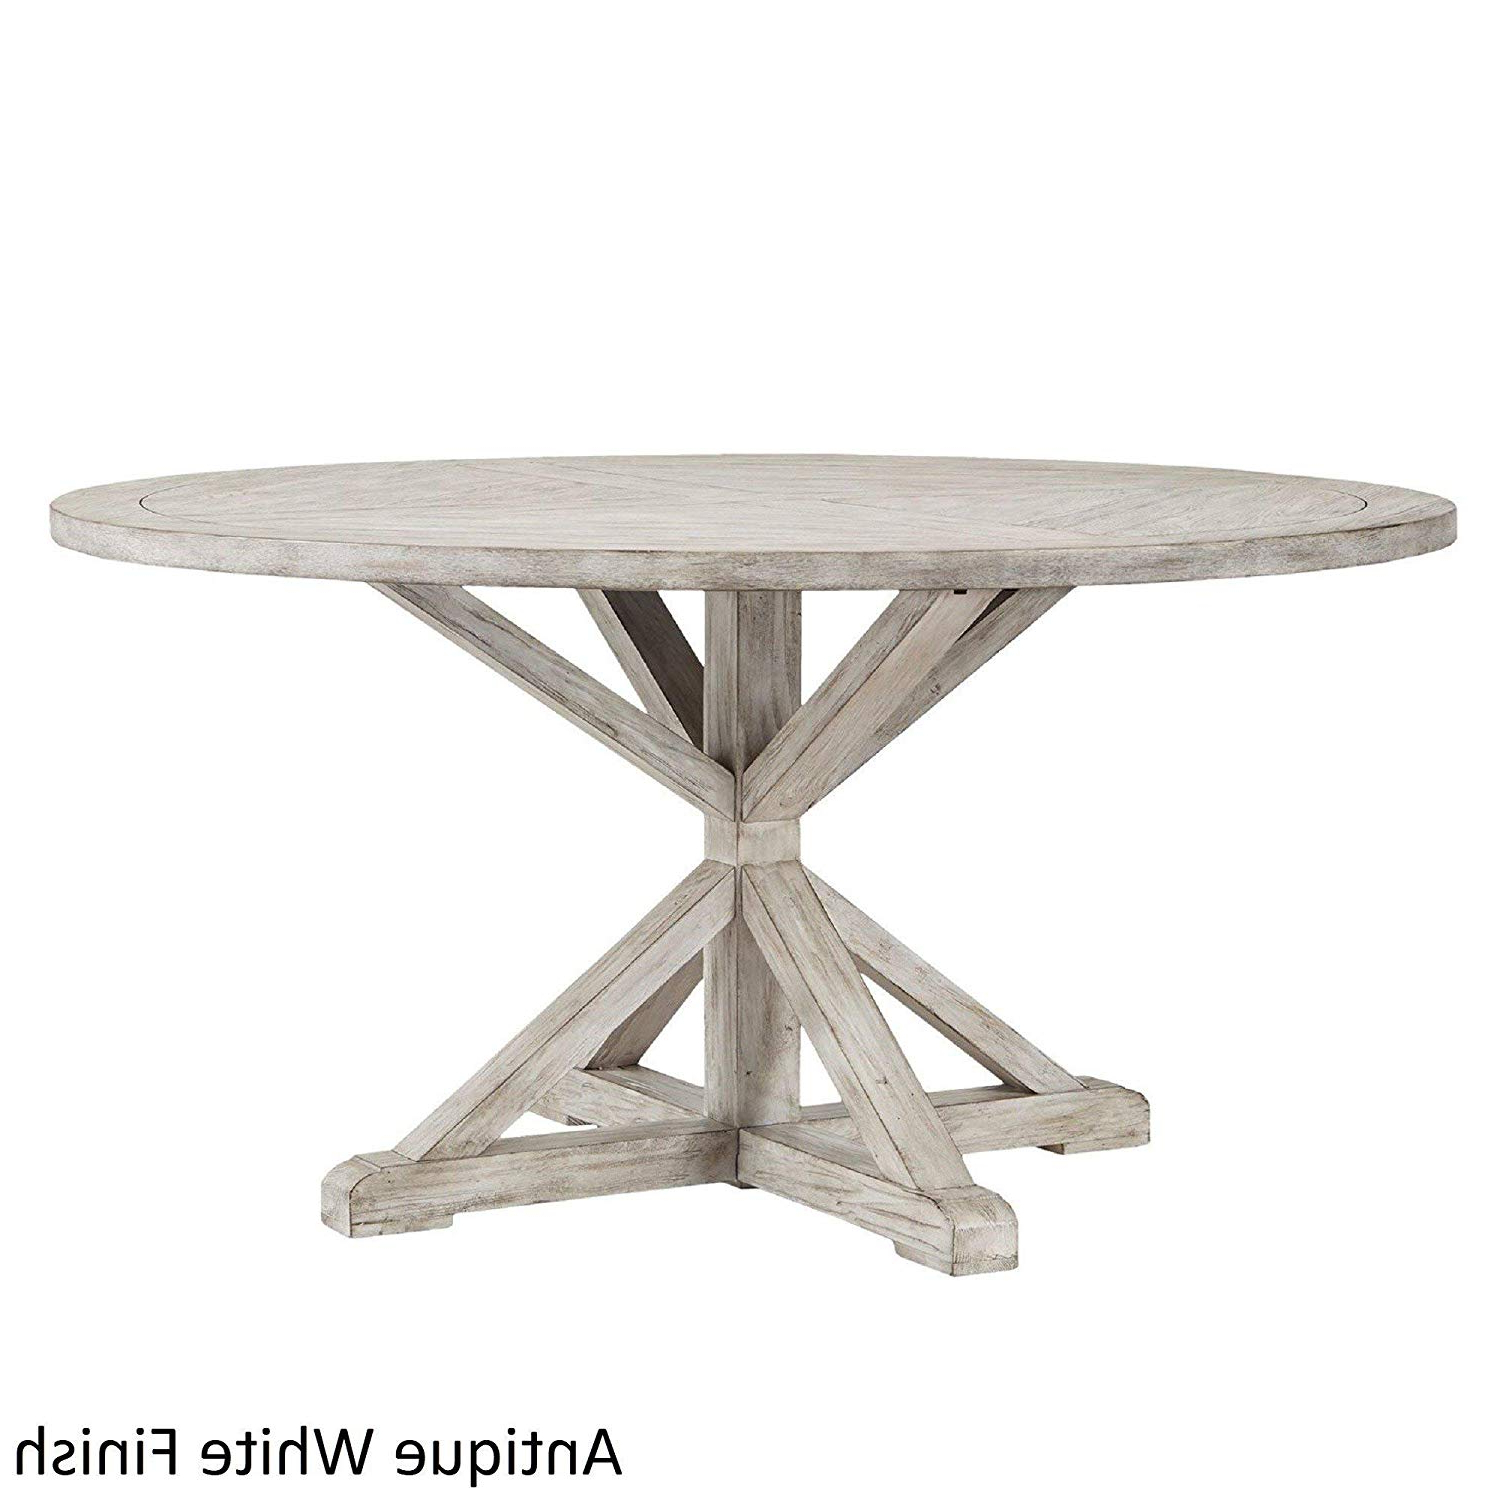 Benchwright Counter Height Tables intended for Current Amazon - Inspire Q Benchwright Rustic X-Base Round Pine